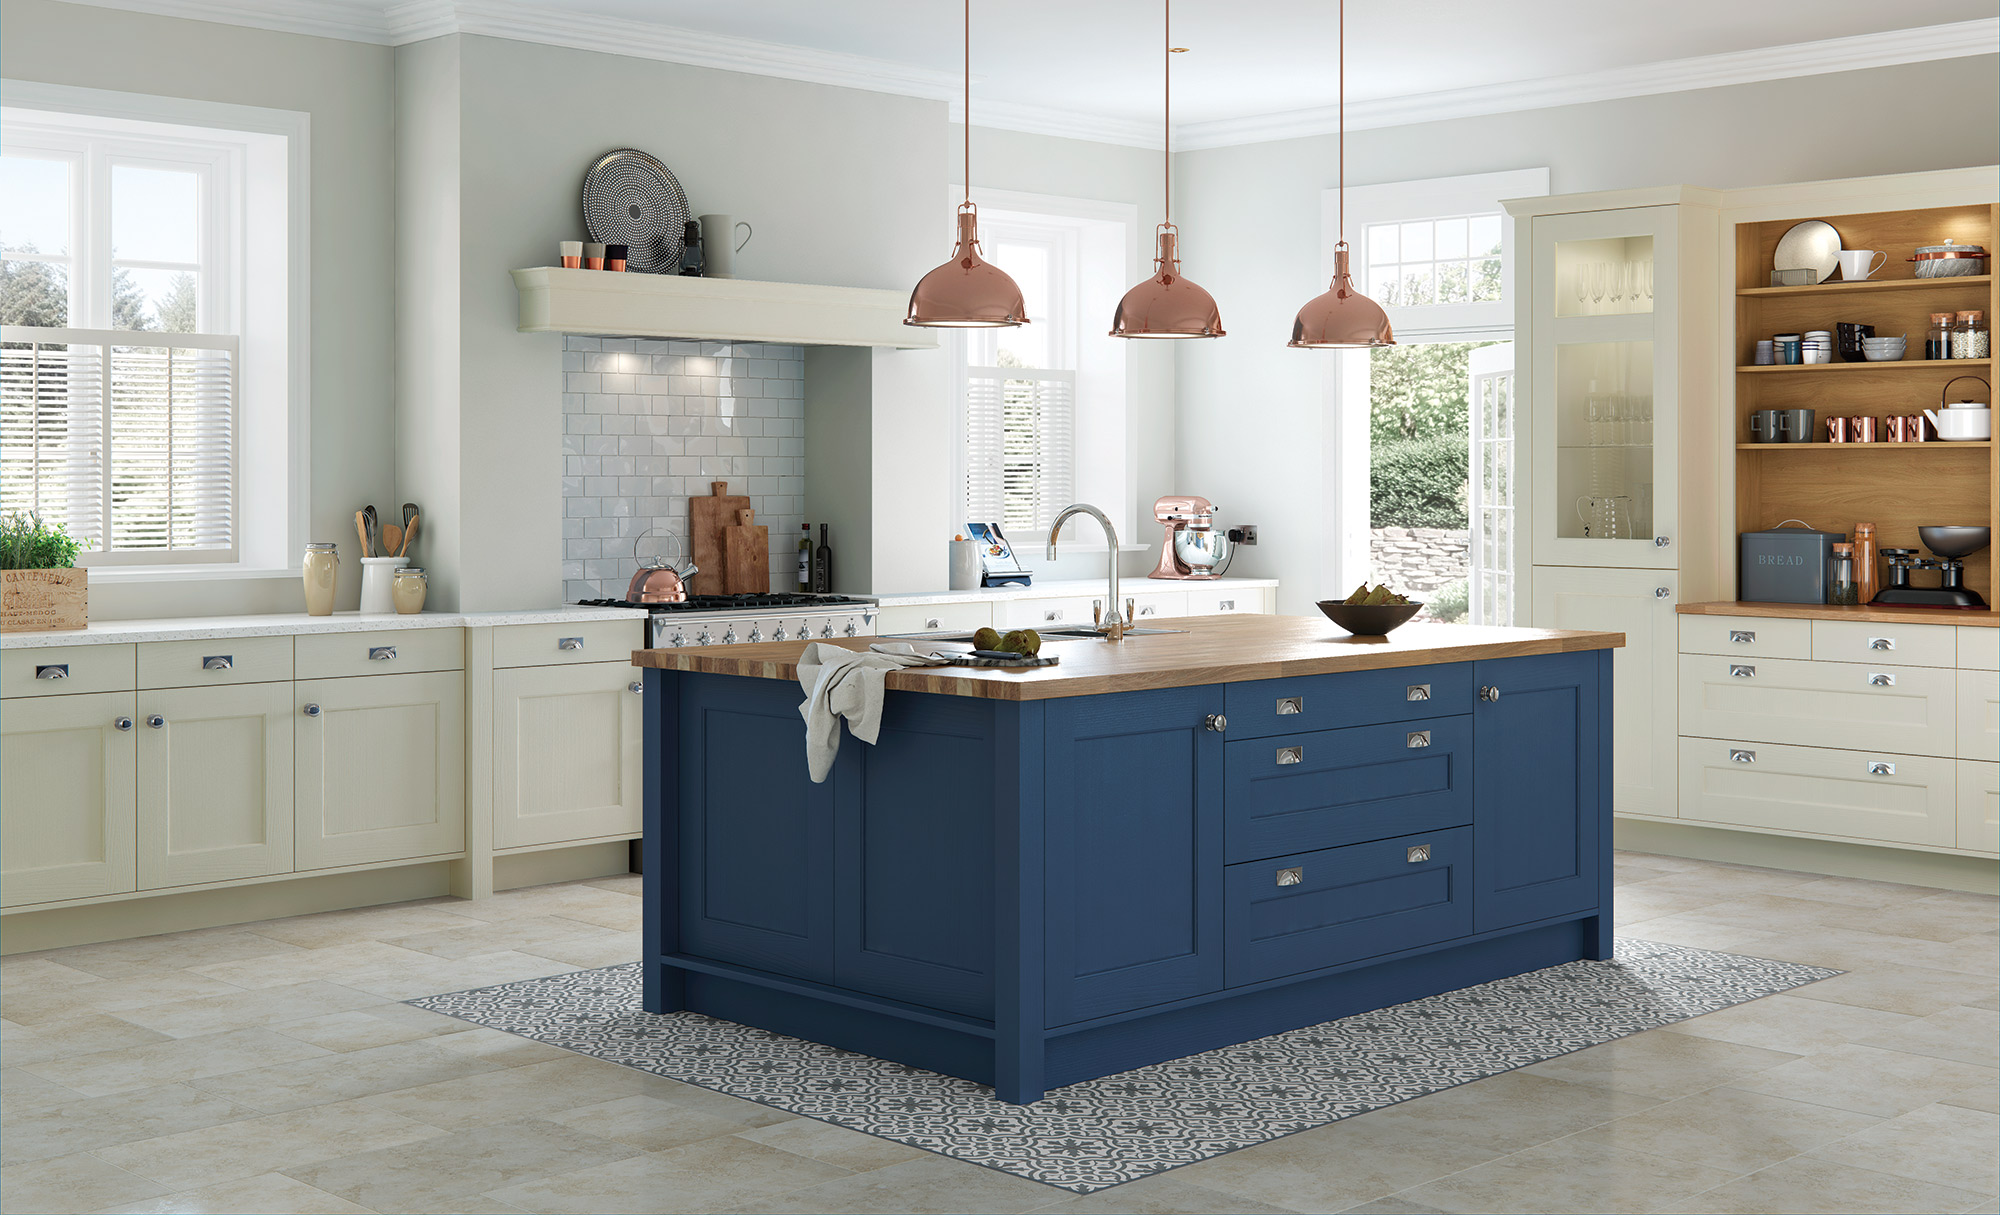 painted shaker cabinet doors. wakefield painted kitchen in mussel u0026 parisian blue shaker cabinet doors